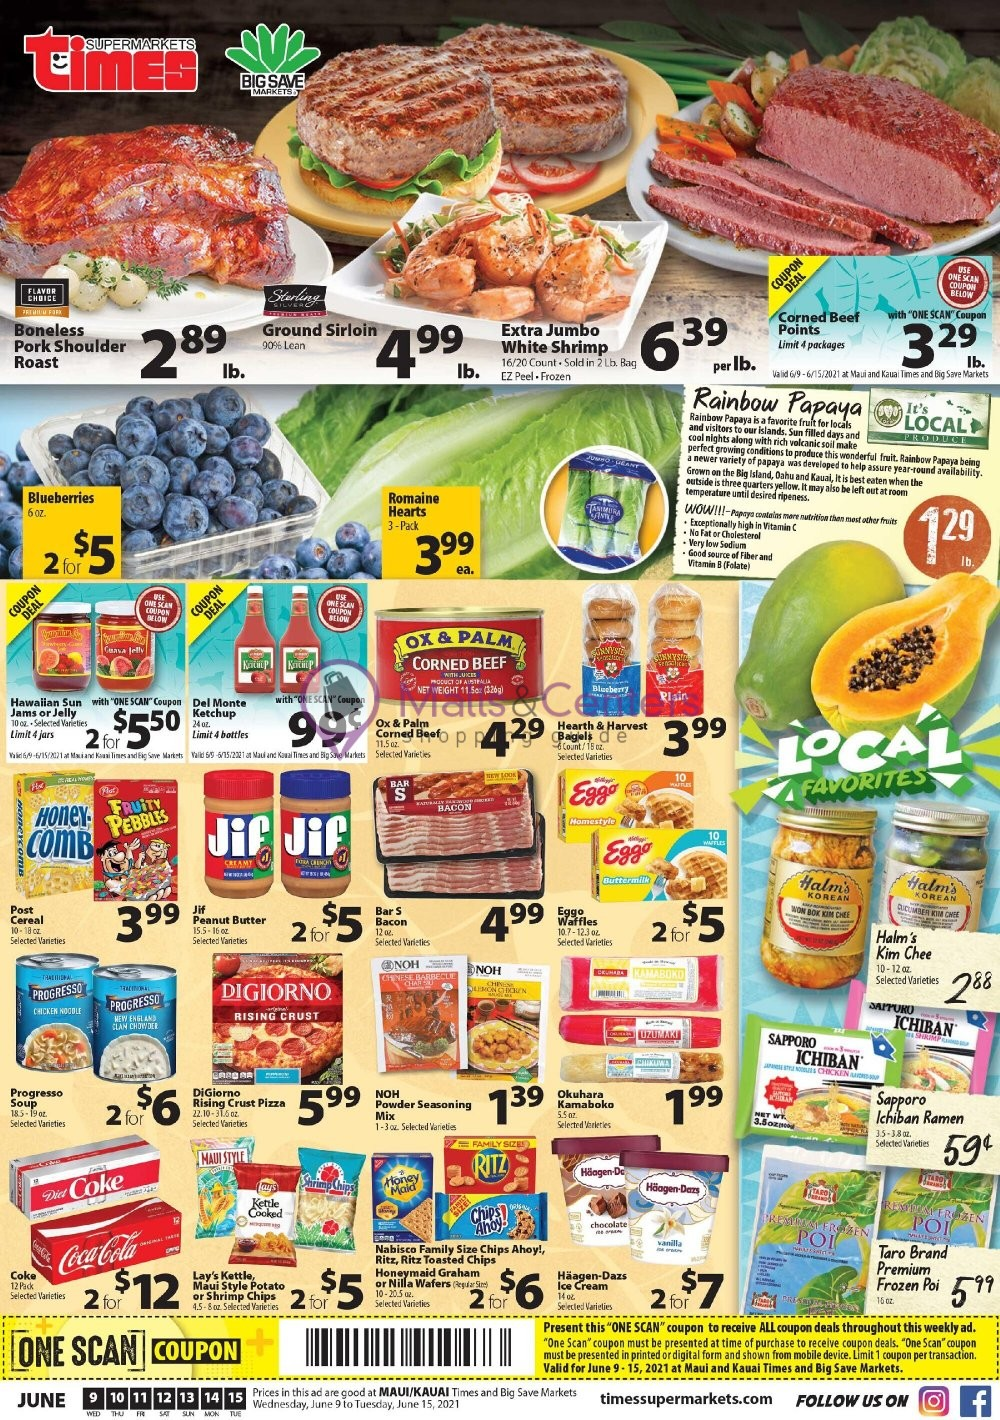 weekly ads Times Supermarkets - page 1 - mallscenters.com